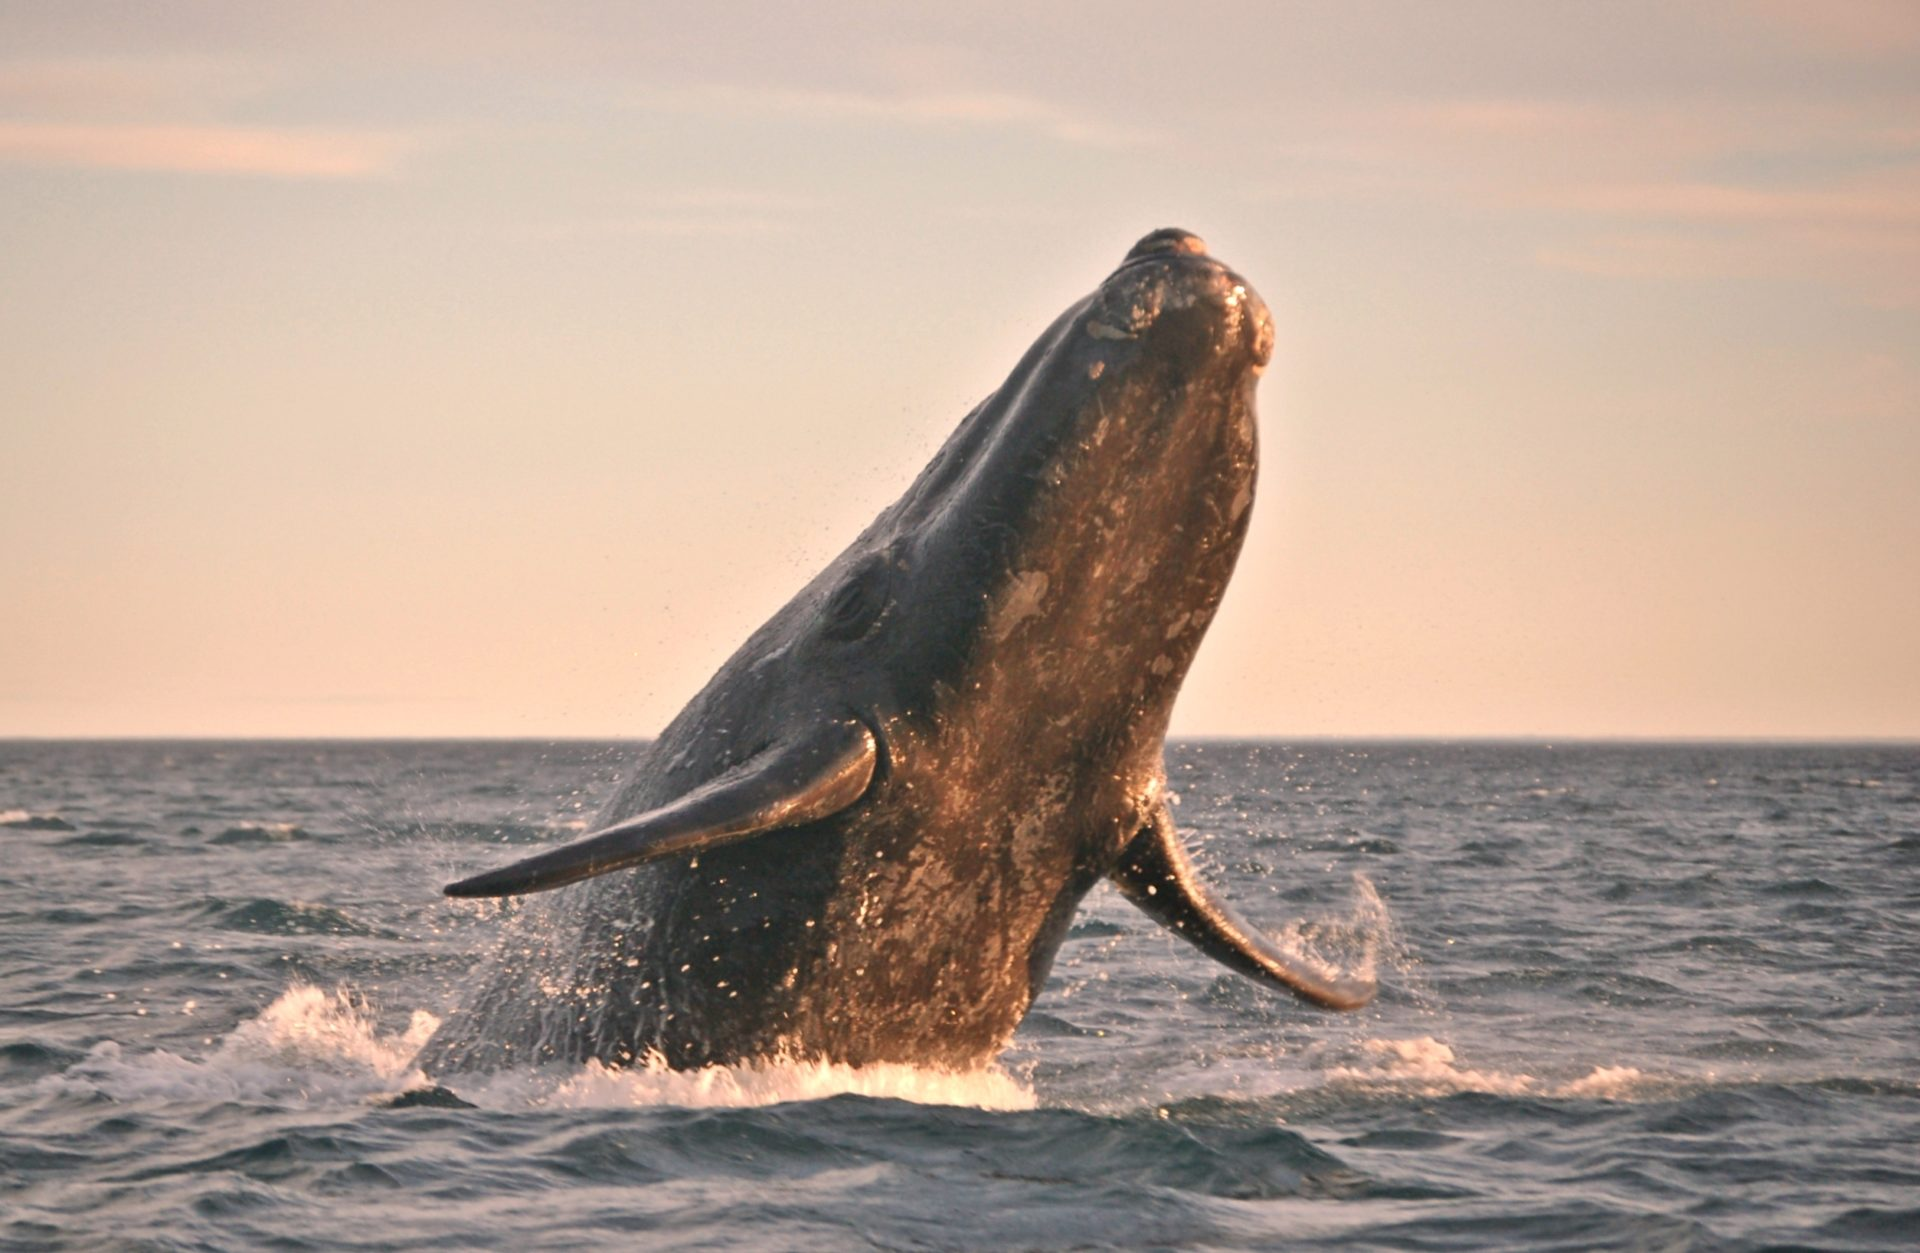 Bitcoin Whale activity picks up ahead of price swing